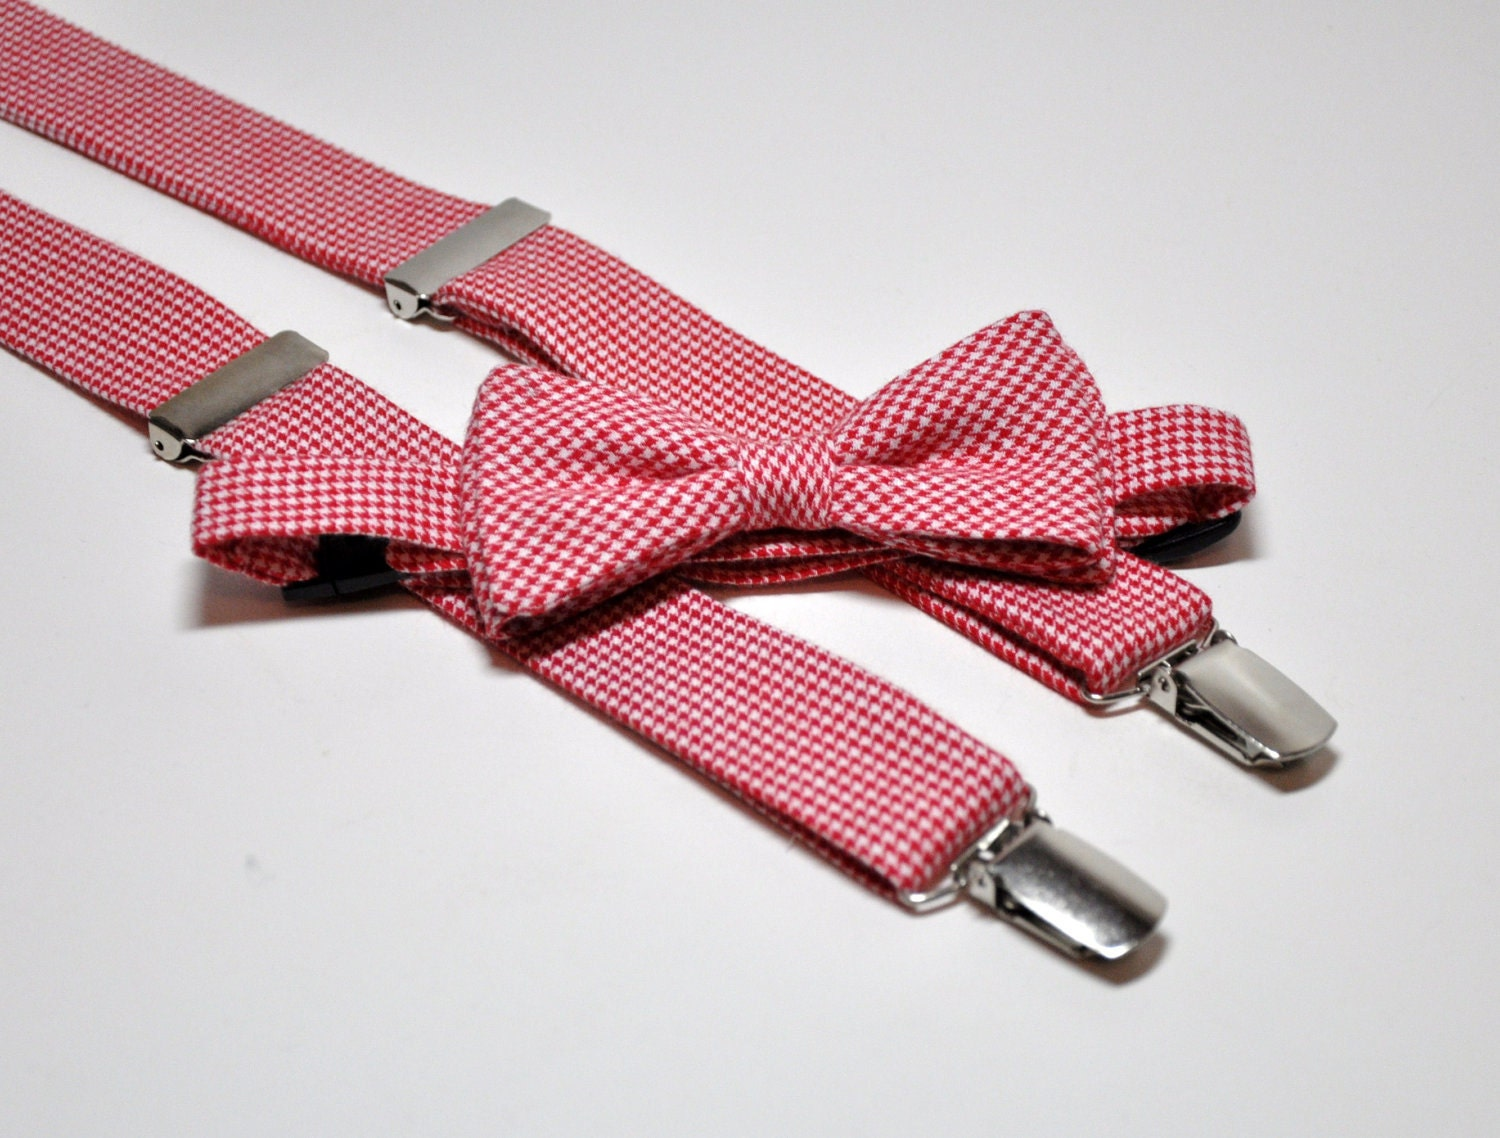 Free shipping on boys' ties at thrushop-9b4y6tny.ga Shop for the latest ties and bow ties from the best brands. Totally free shipping and returns.